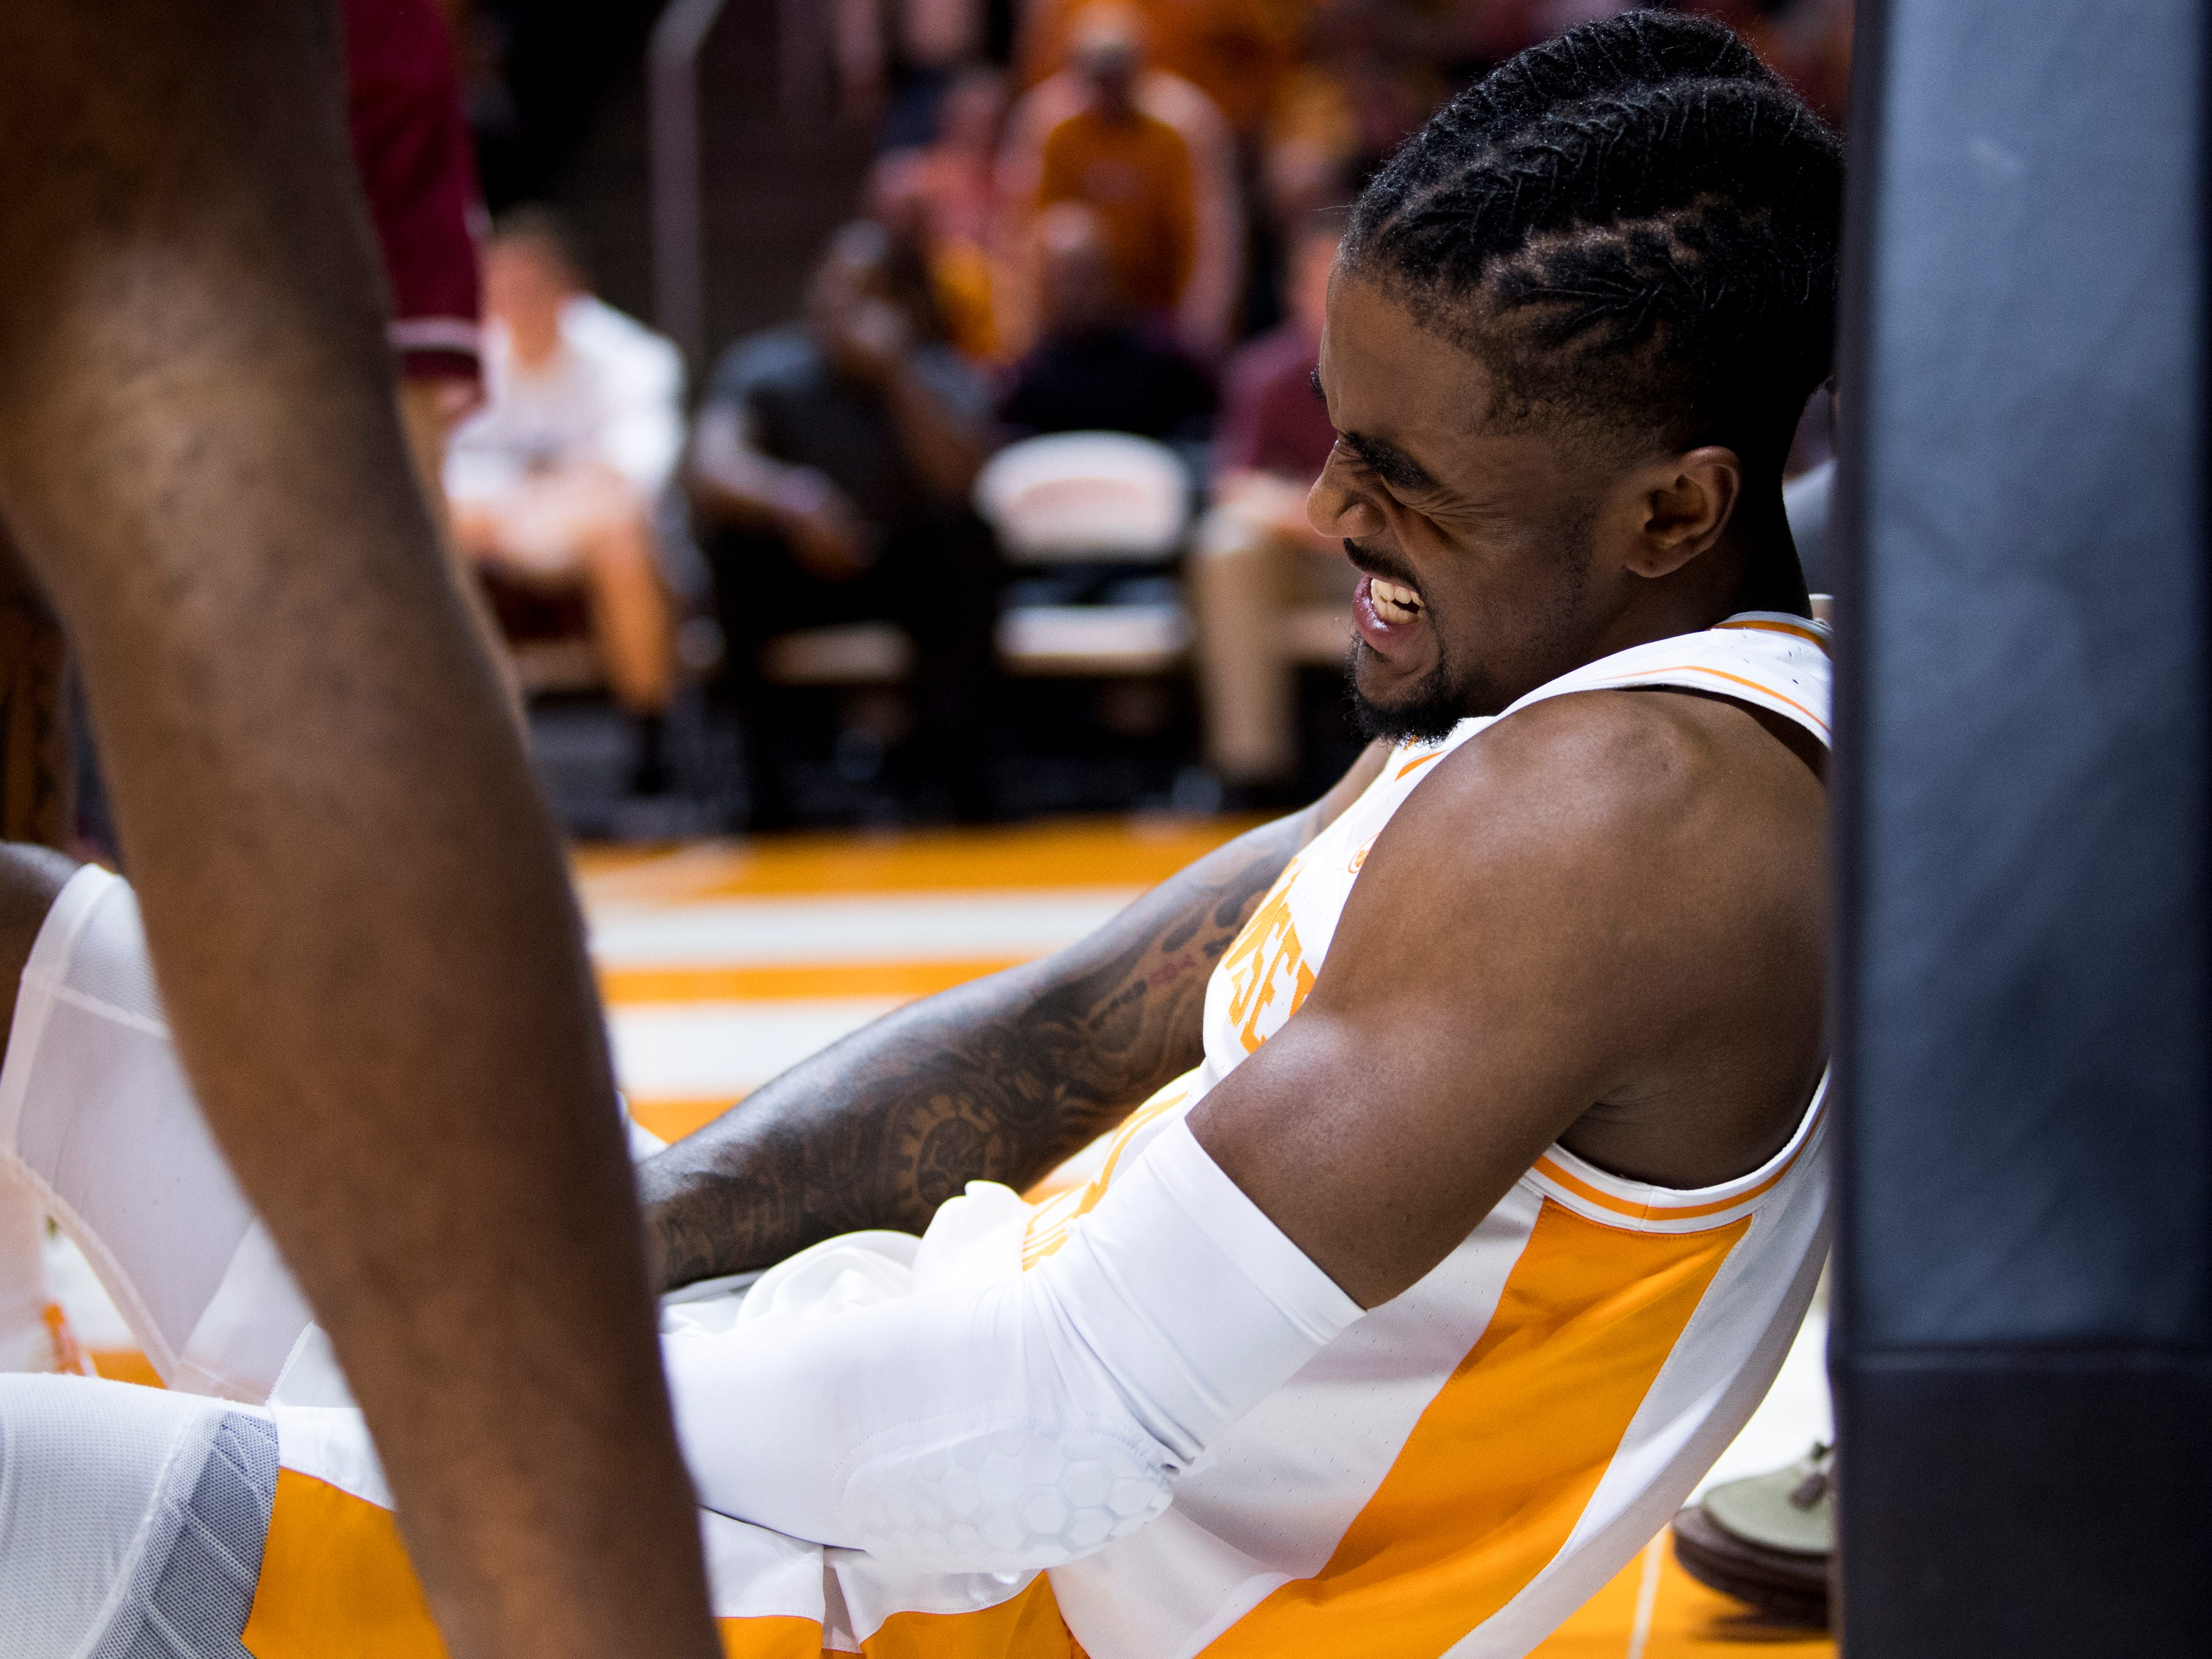 Tennessee guard Jordan Bone (0) grimaces in pain after being fouled at the basket during Tennessee's home SEC game against South Carolina at Thompson-Boling Arena in Knoxville on Wednesday, February 13, 2019.